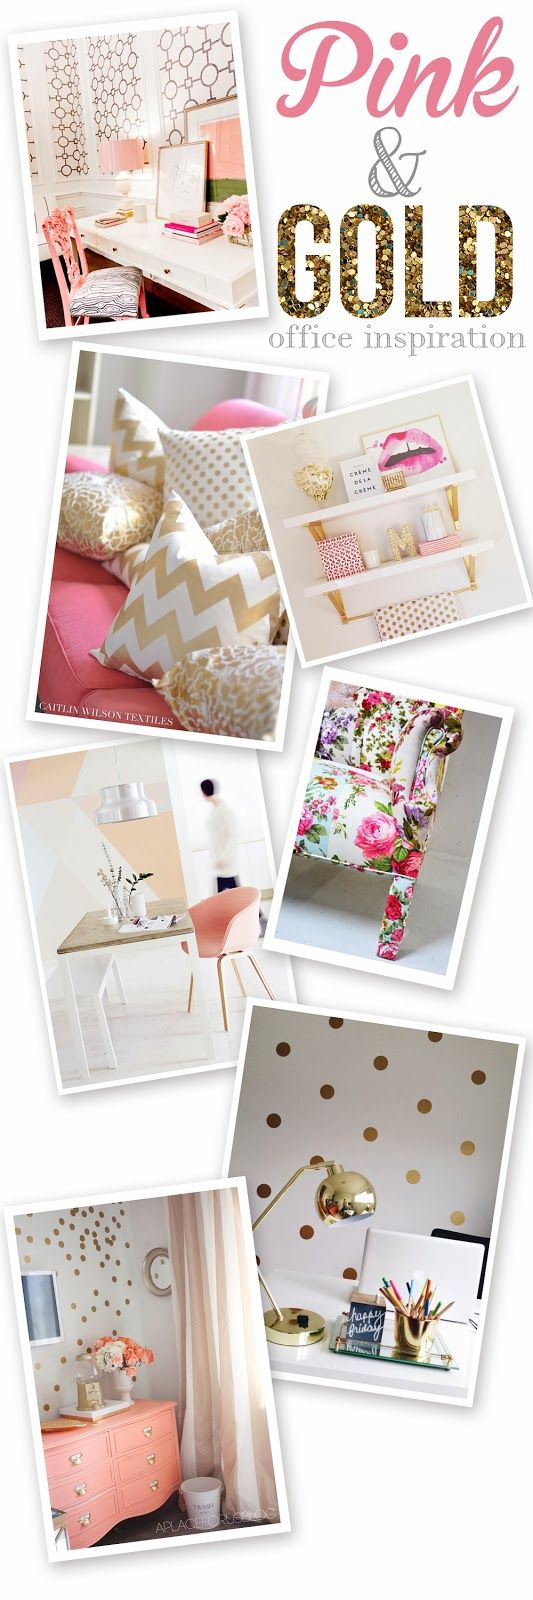 Pink and Gold Office Inspiration. I'm re-doing my home studio and I'm going for…